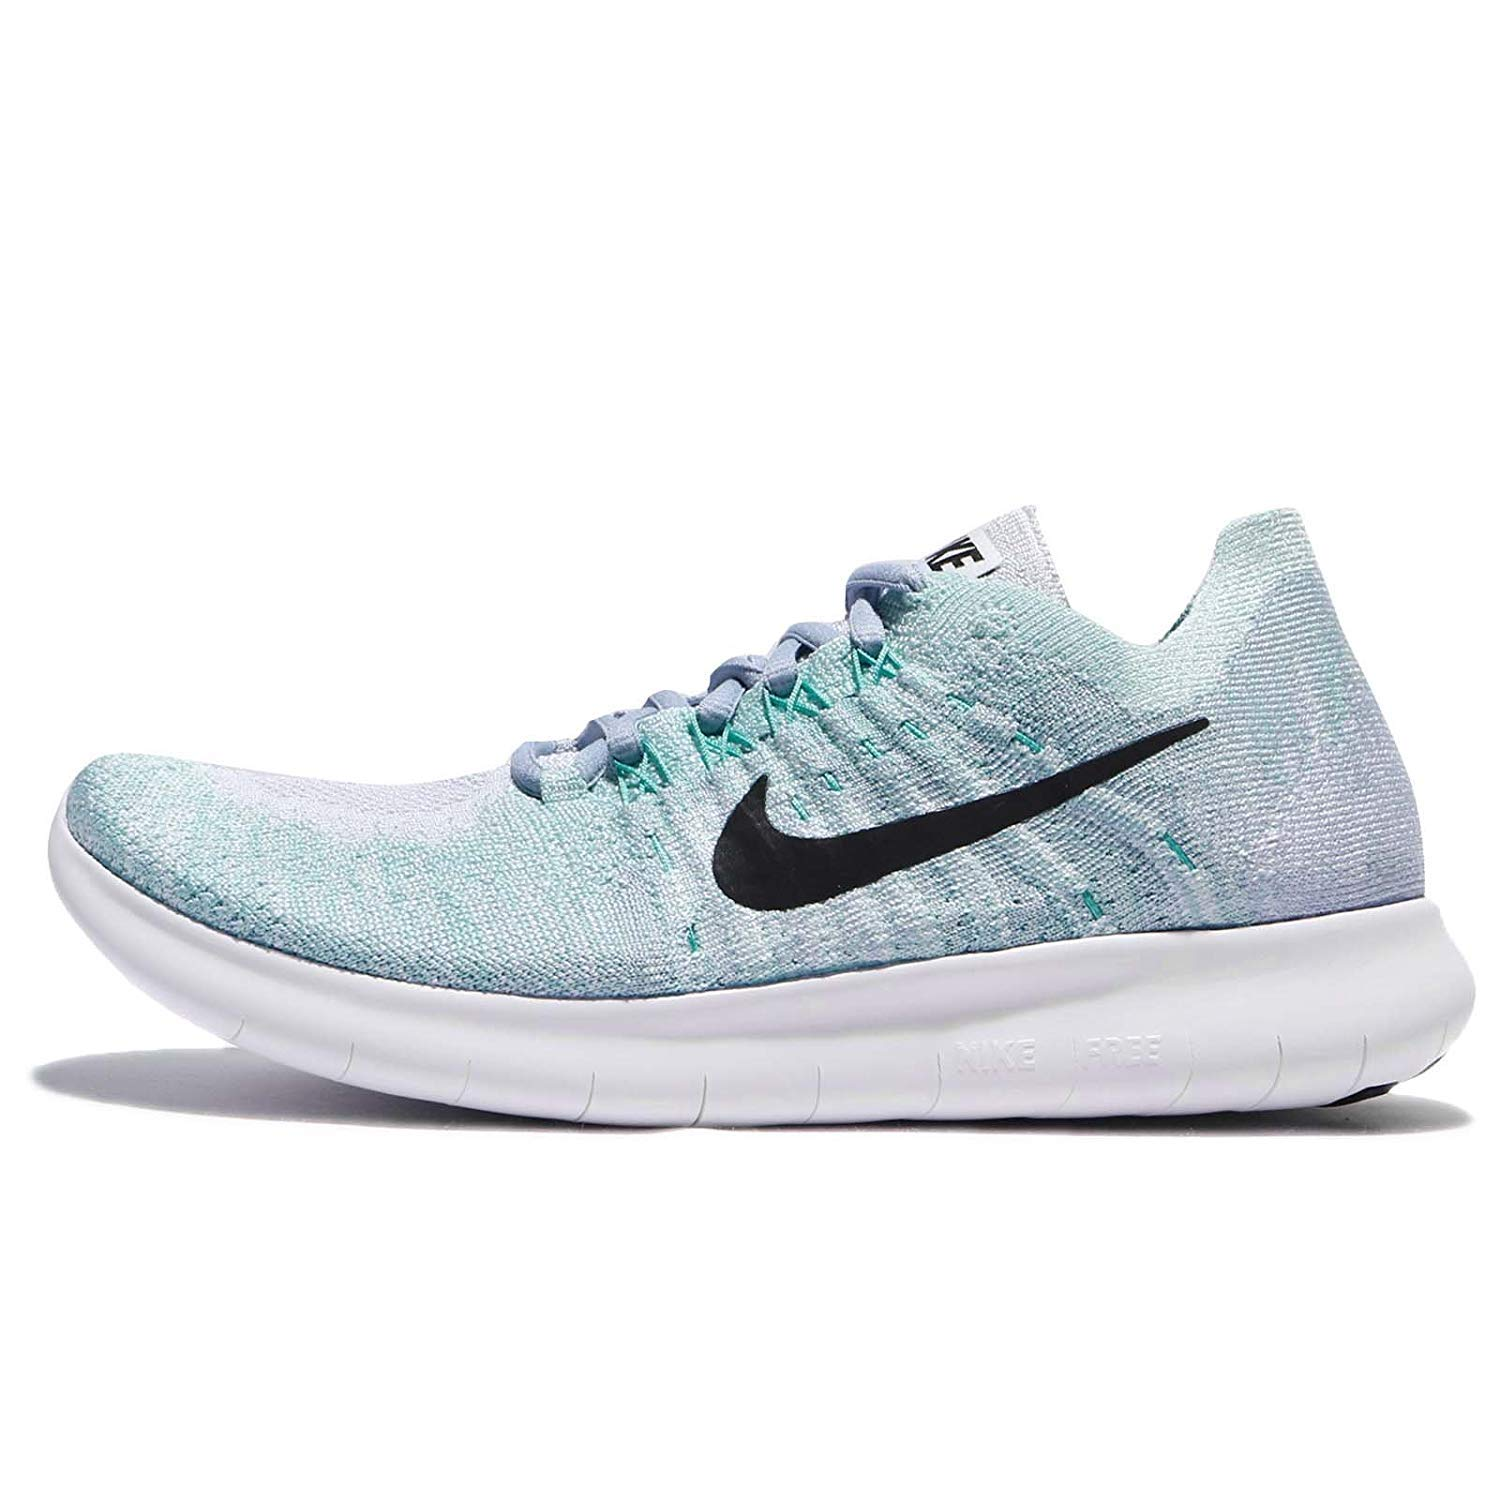 daae2a276c721 Nike Womens Free Rn Flyknit 2017 Fabric Low Top Lace Up Running, Blue, Size  11.0